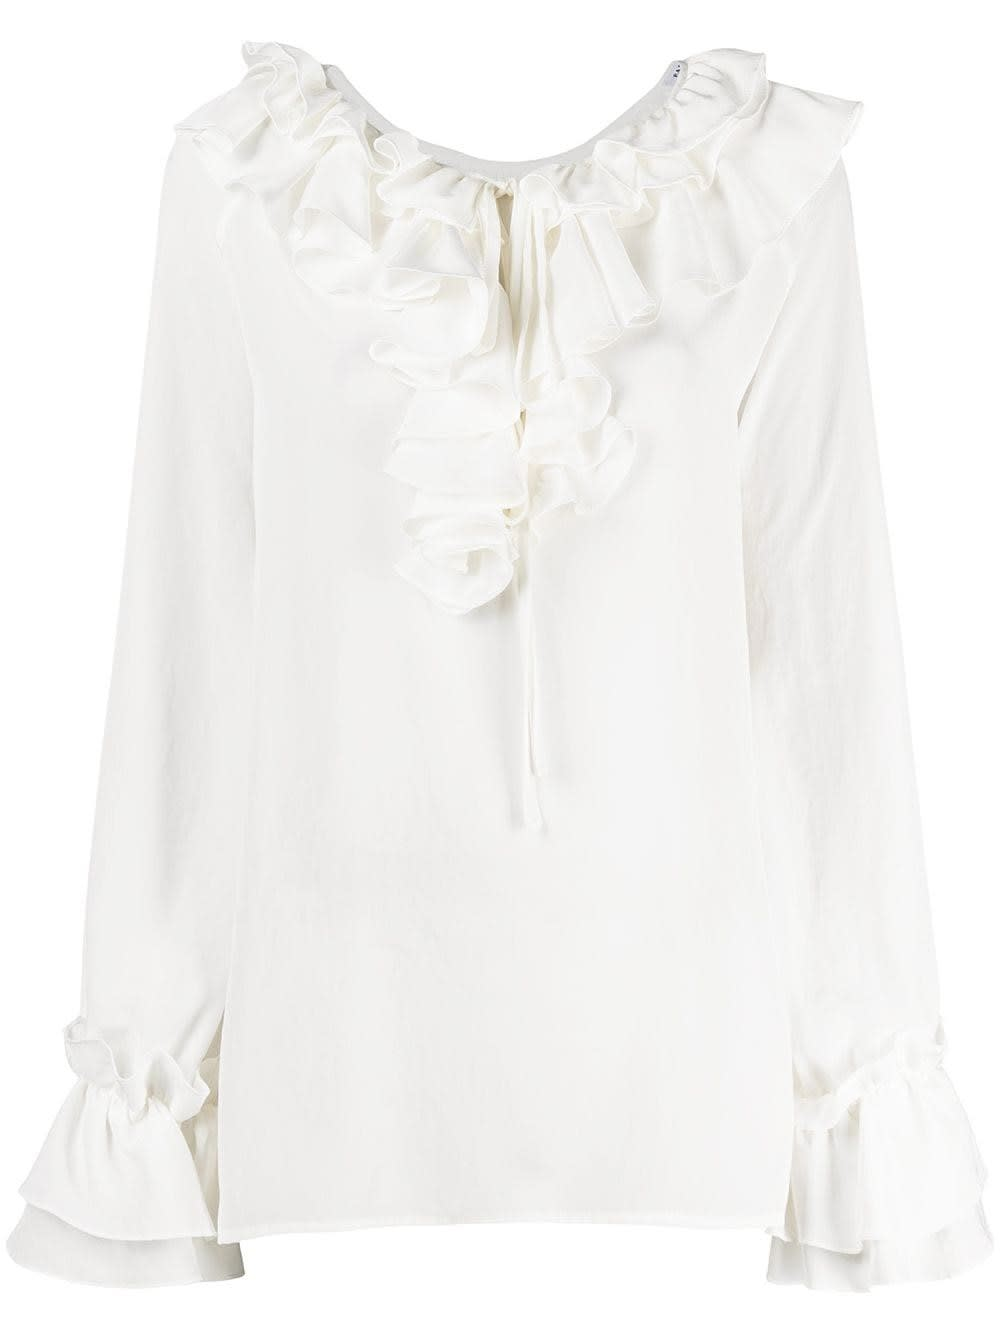 P.a.r.o.s.h. WHITE BLOUSE WITH RUFFLES DETAIL